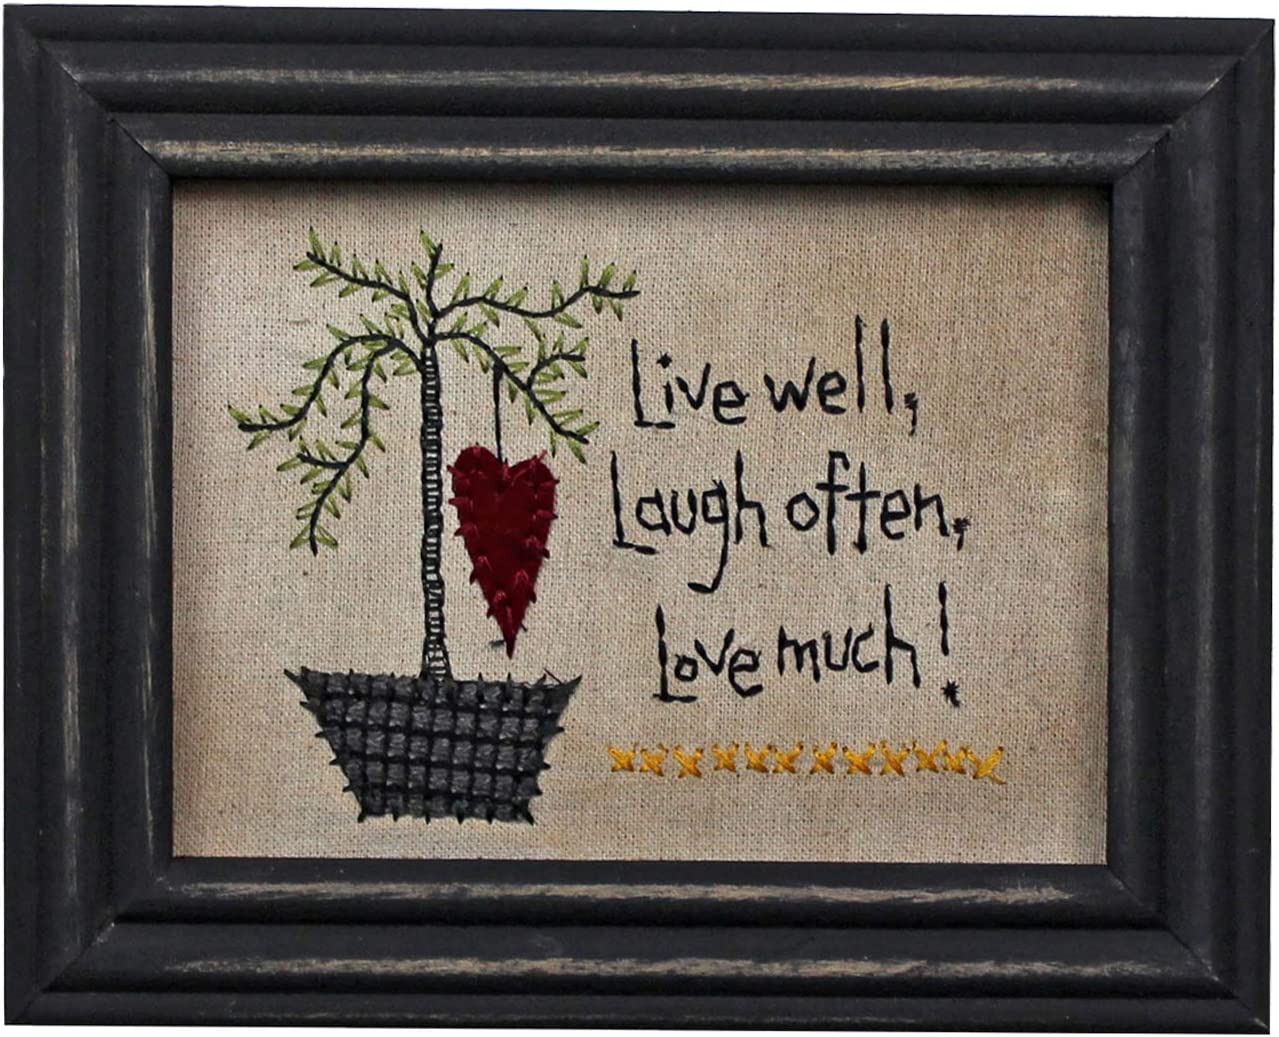 CVHOMEDECO. Primitives Vintage Live Well, Laugh Often, Love Much! Stitchery Frame Wall Hanging Decoration Art, 8-3/4 x 6-3/4 Inch